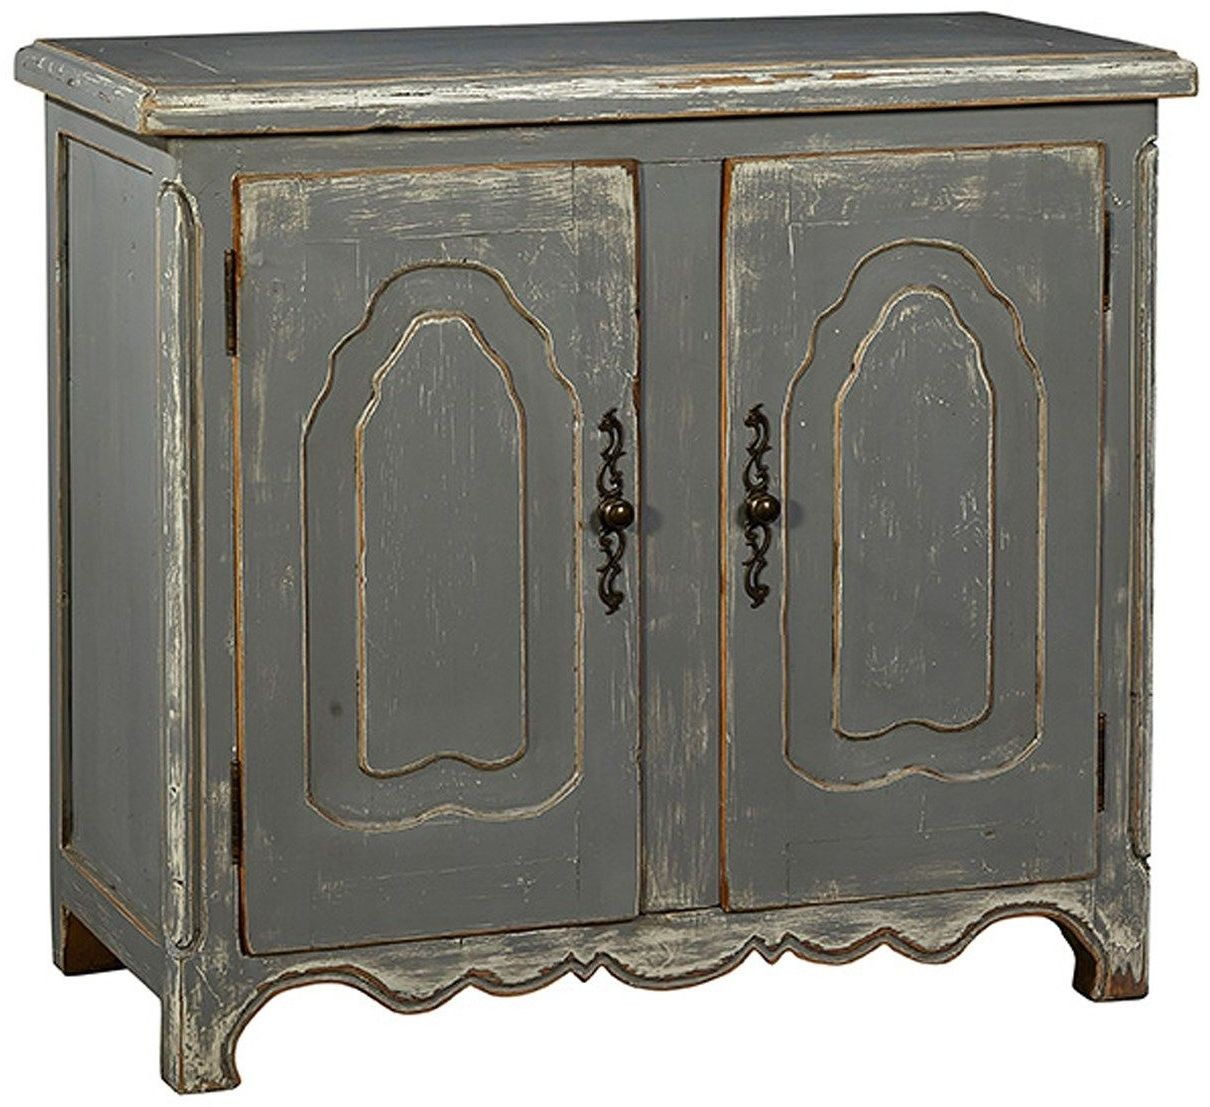 Grey Distressed Kitchen Cabinets: Verdugo 2 Door Distressed Gray Cabinet From Furniture